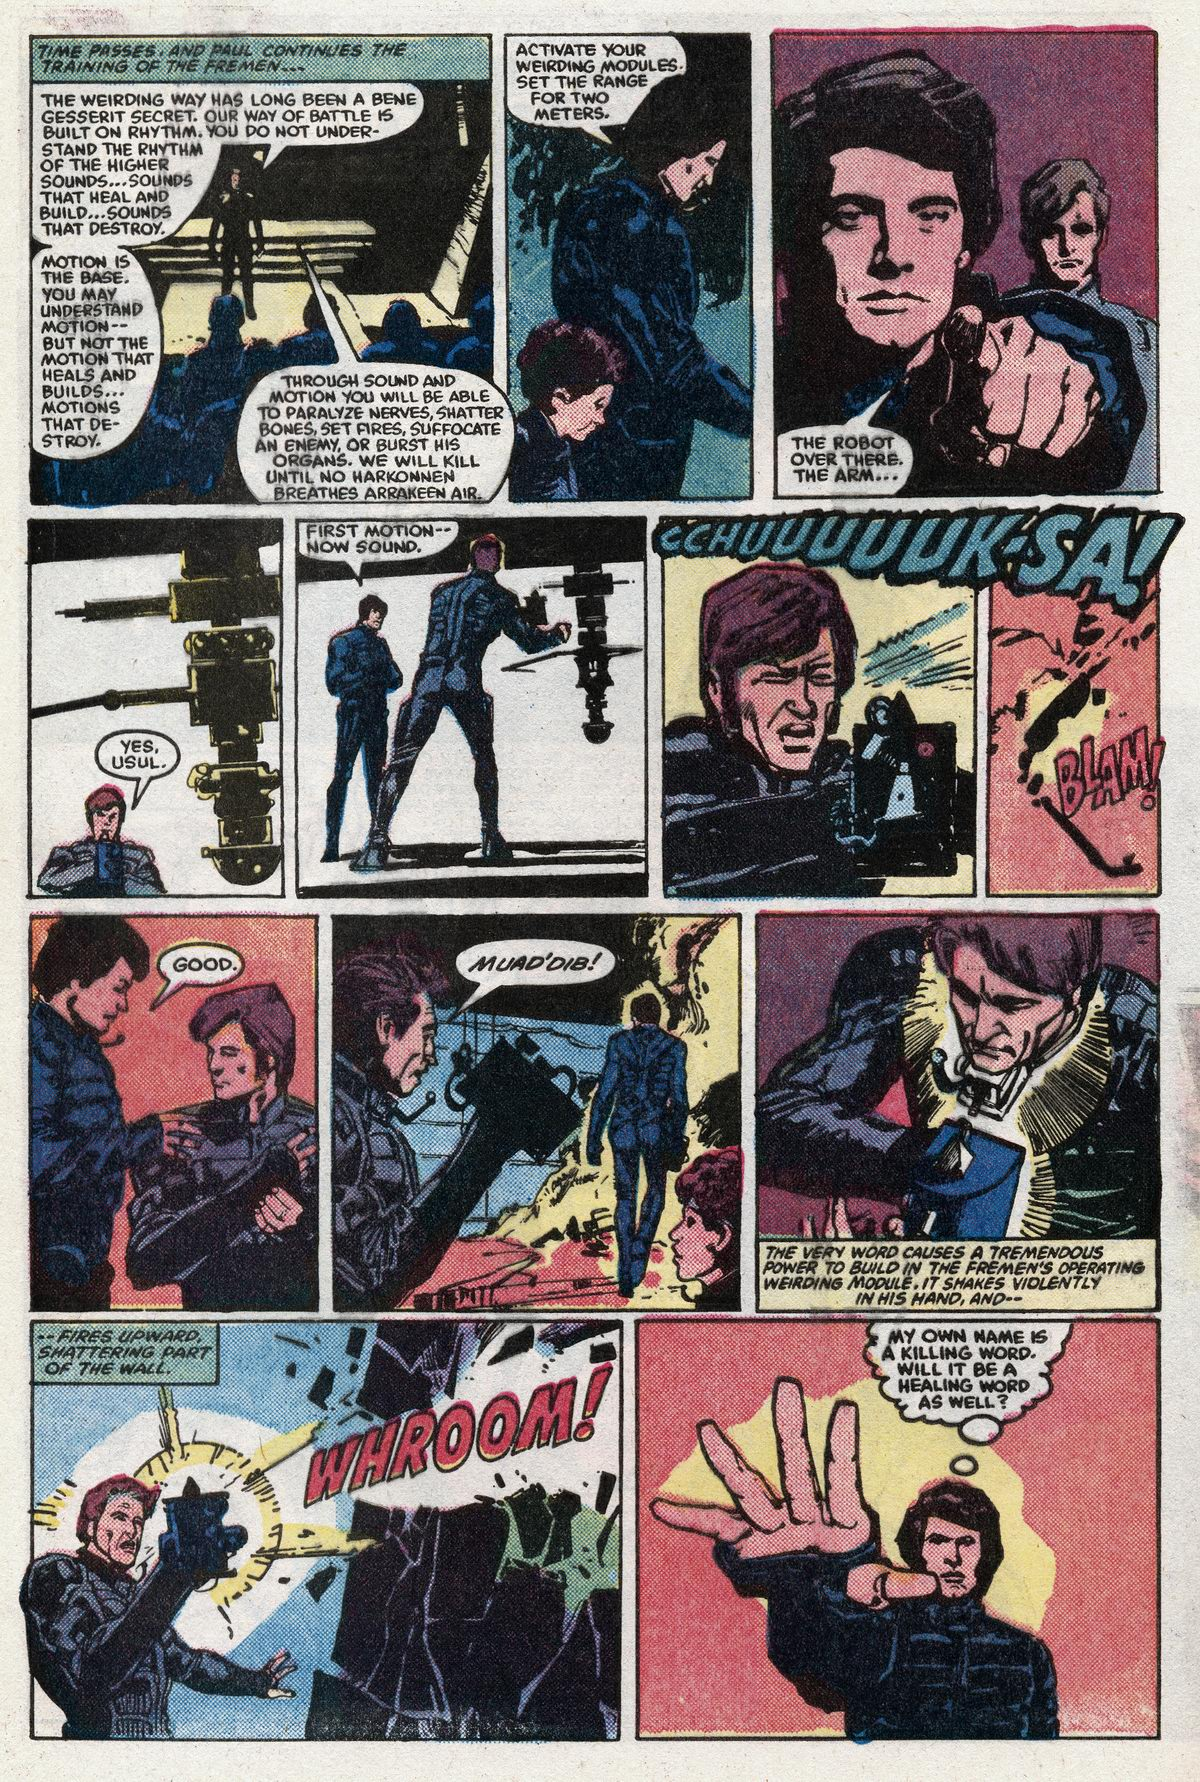 Dune #2 - Read Dune Issue #2 Page 32